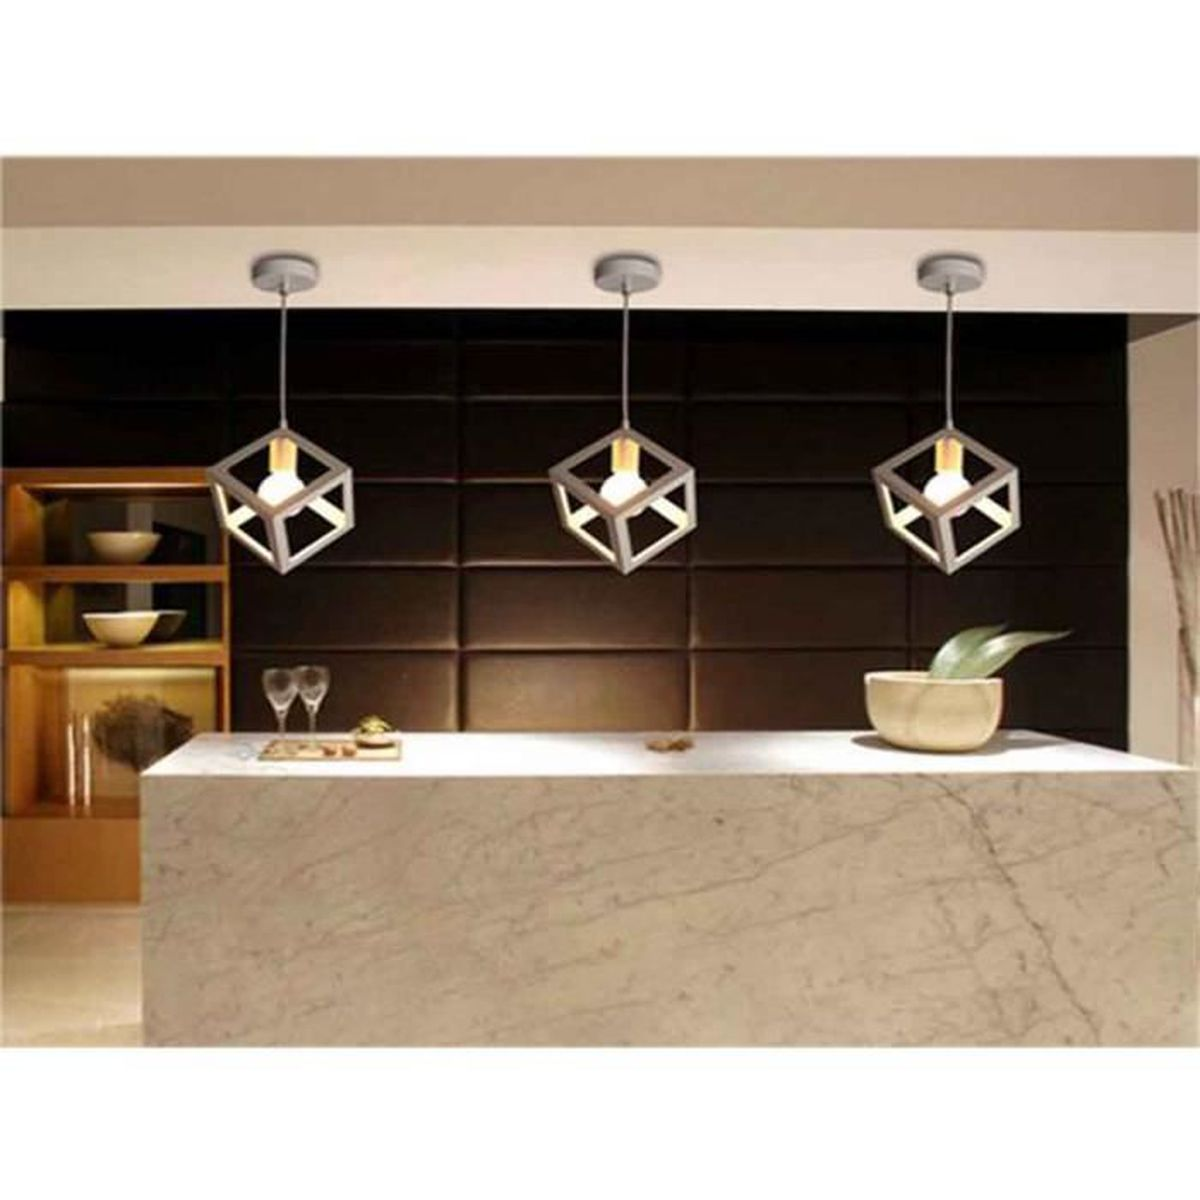 stoex 1pcs suspension luminaire design cube m tal 16cm industriel corde ajustable 110 220v. Black Bedroom Furniture Sets. Home Design Ideas